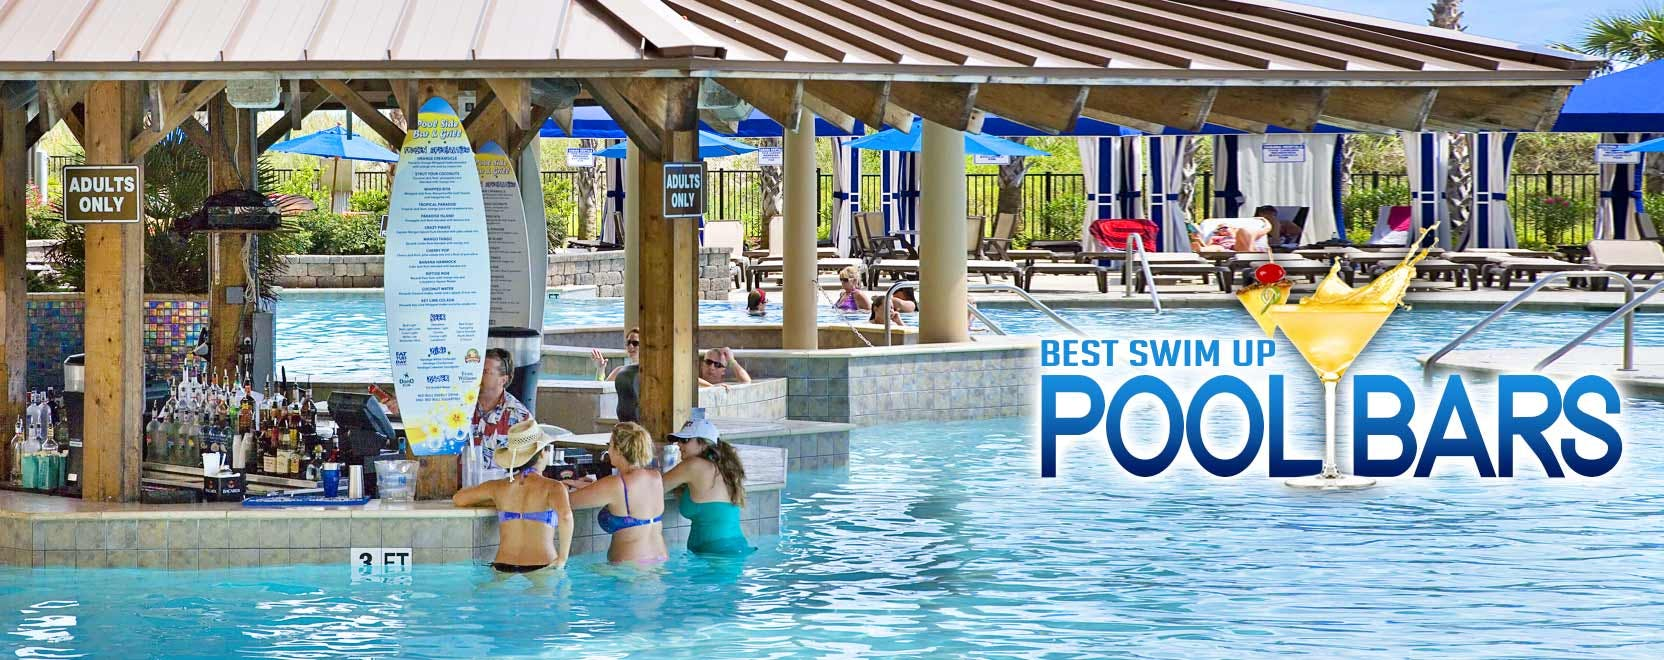 5 Awesome Pool Bars in Myrtle Beach You Need to See